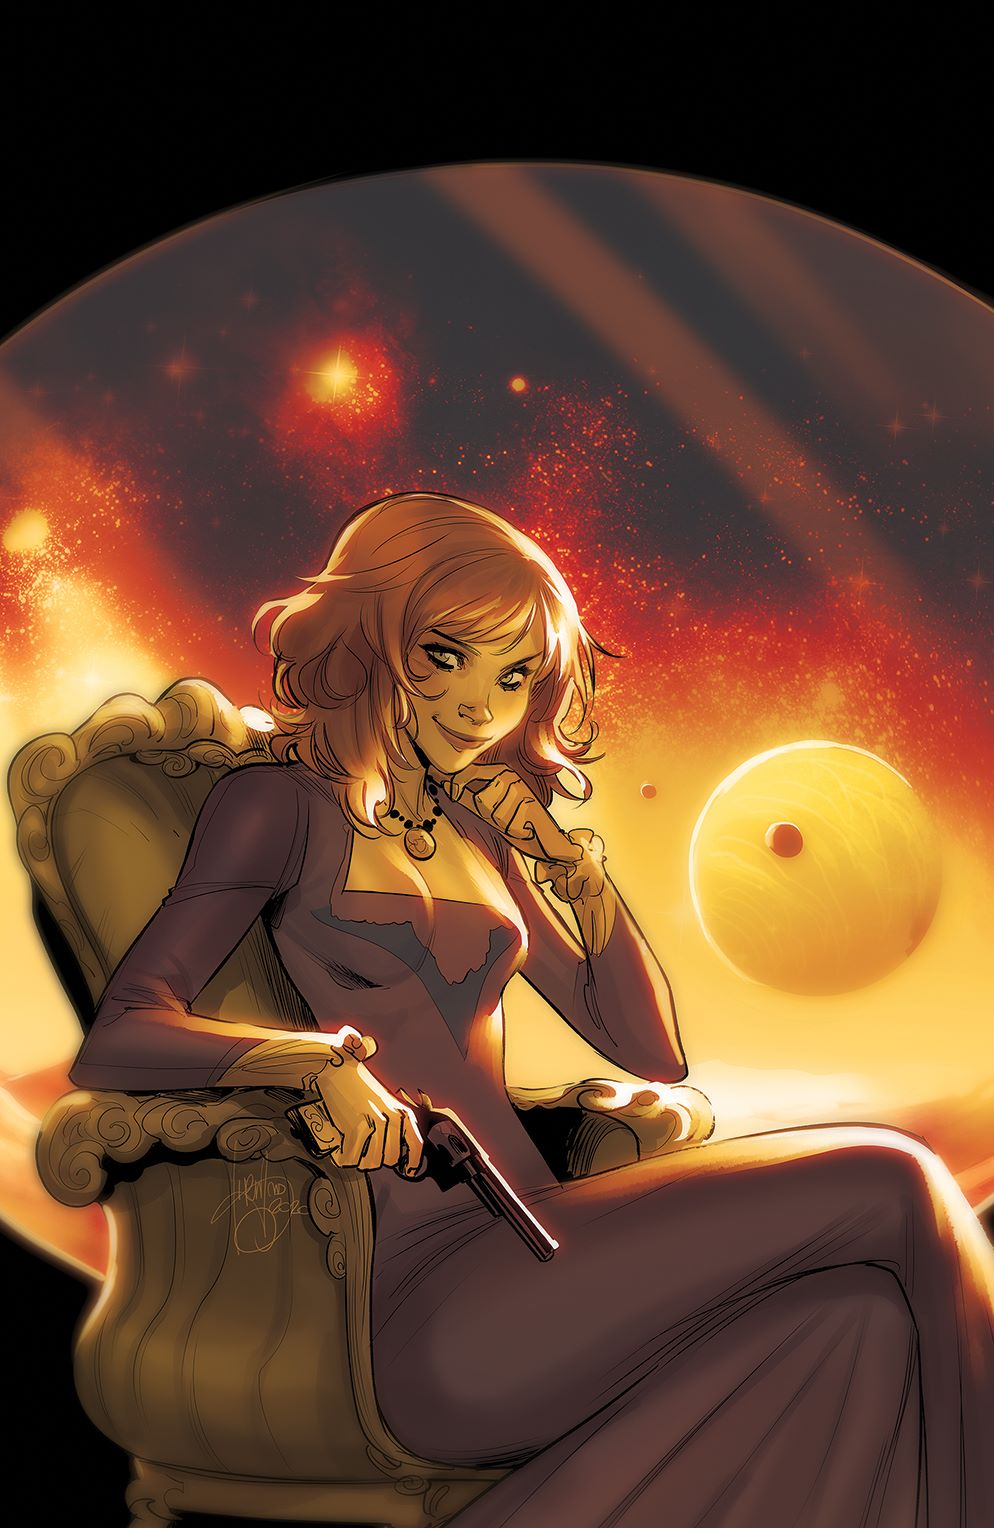 Firefly_025_Cover_E_Variant ComicList Previews: FIREFLY #25